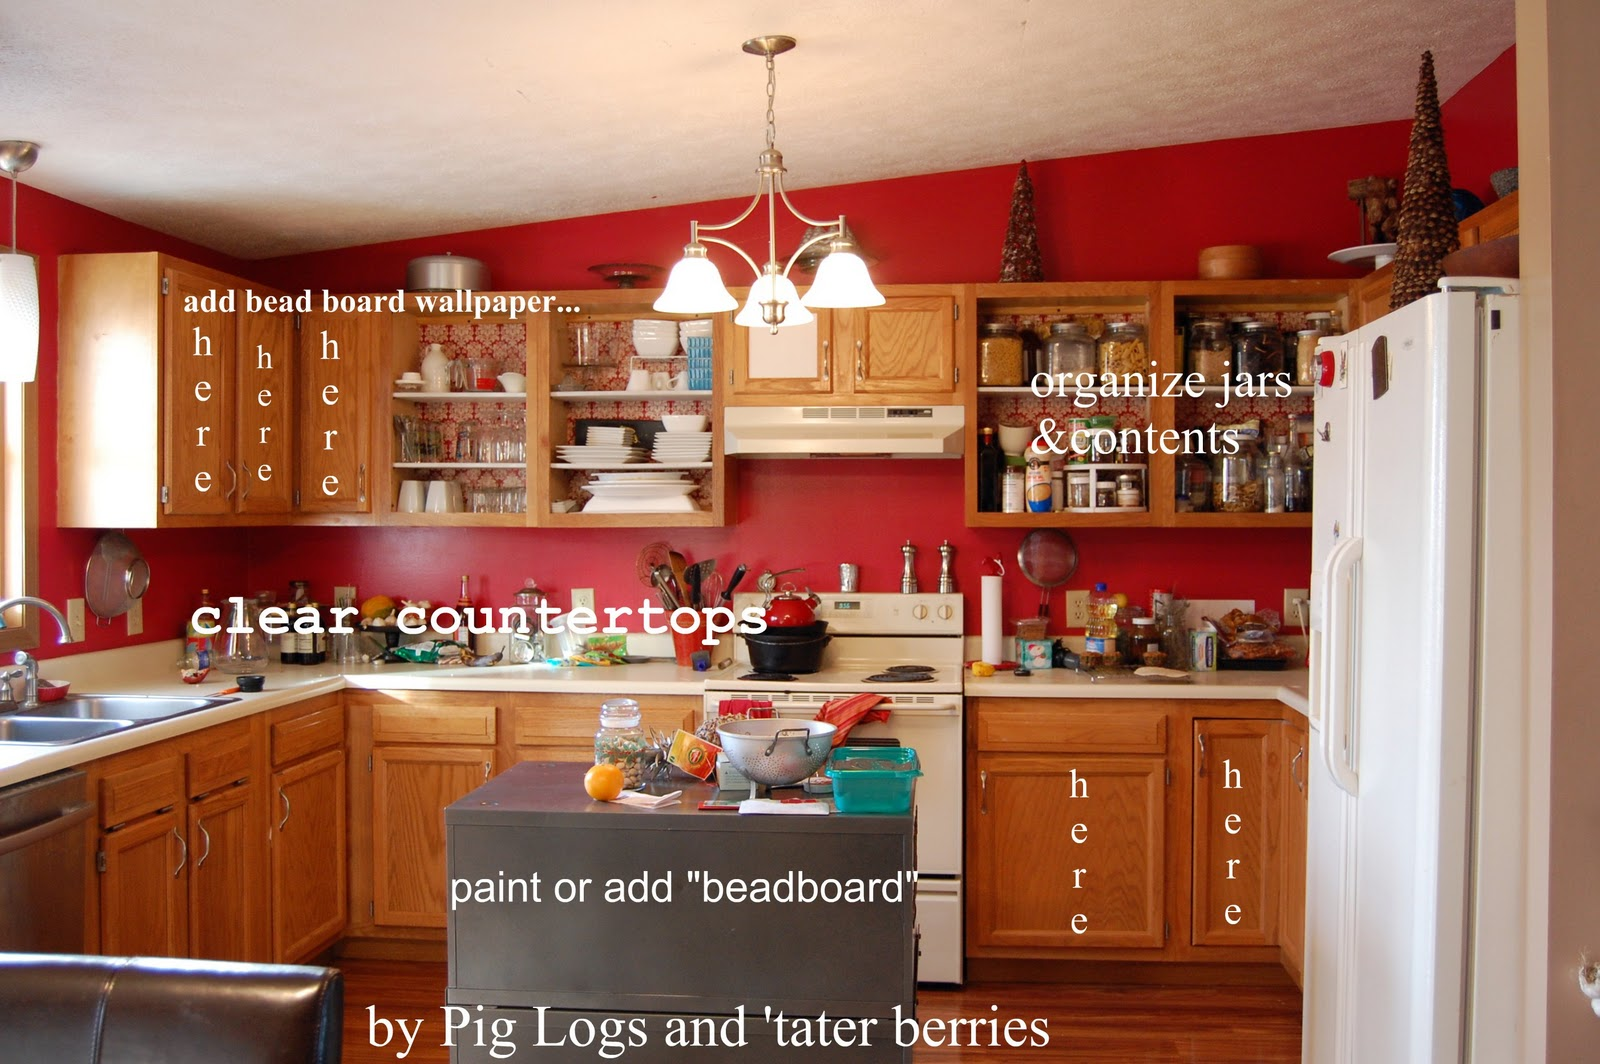 Pig Logs and tater berries A Picture Perfect Room challenge 1600x1064